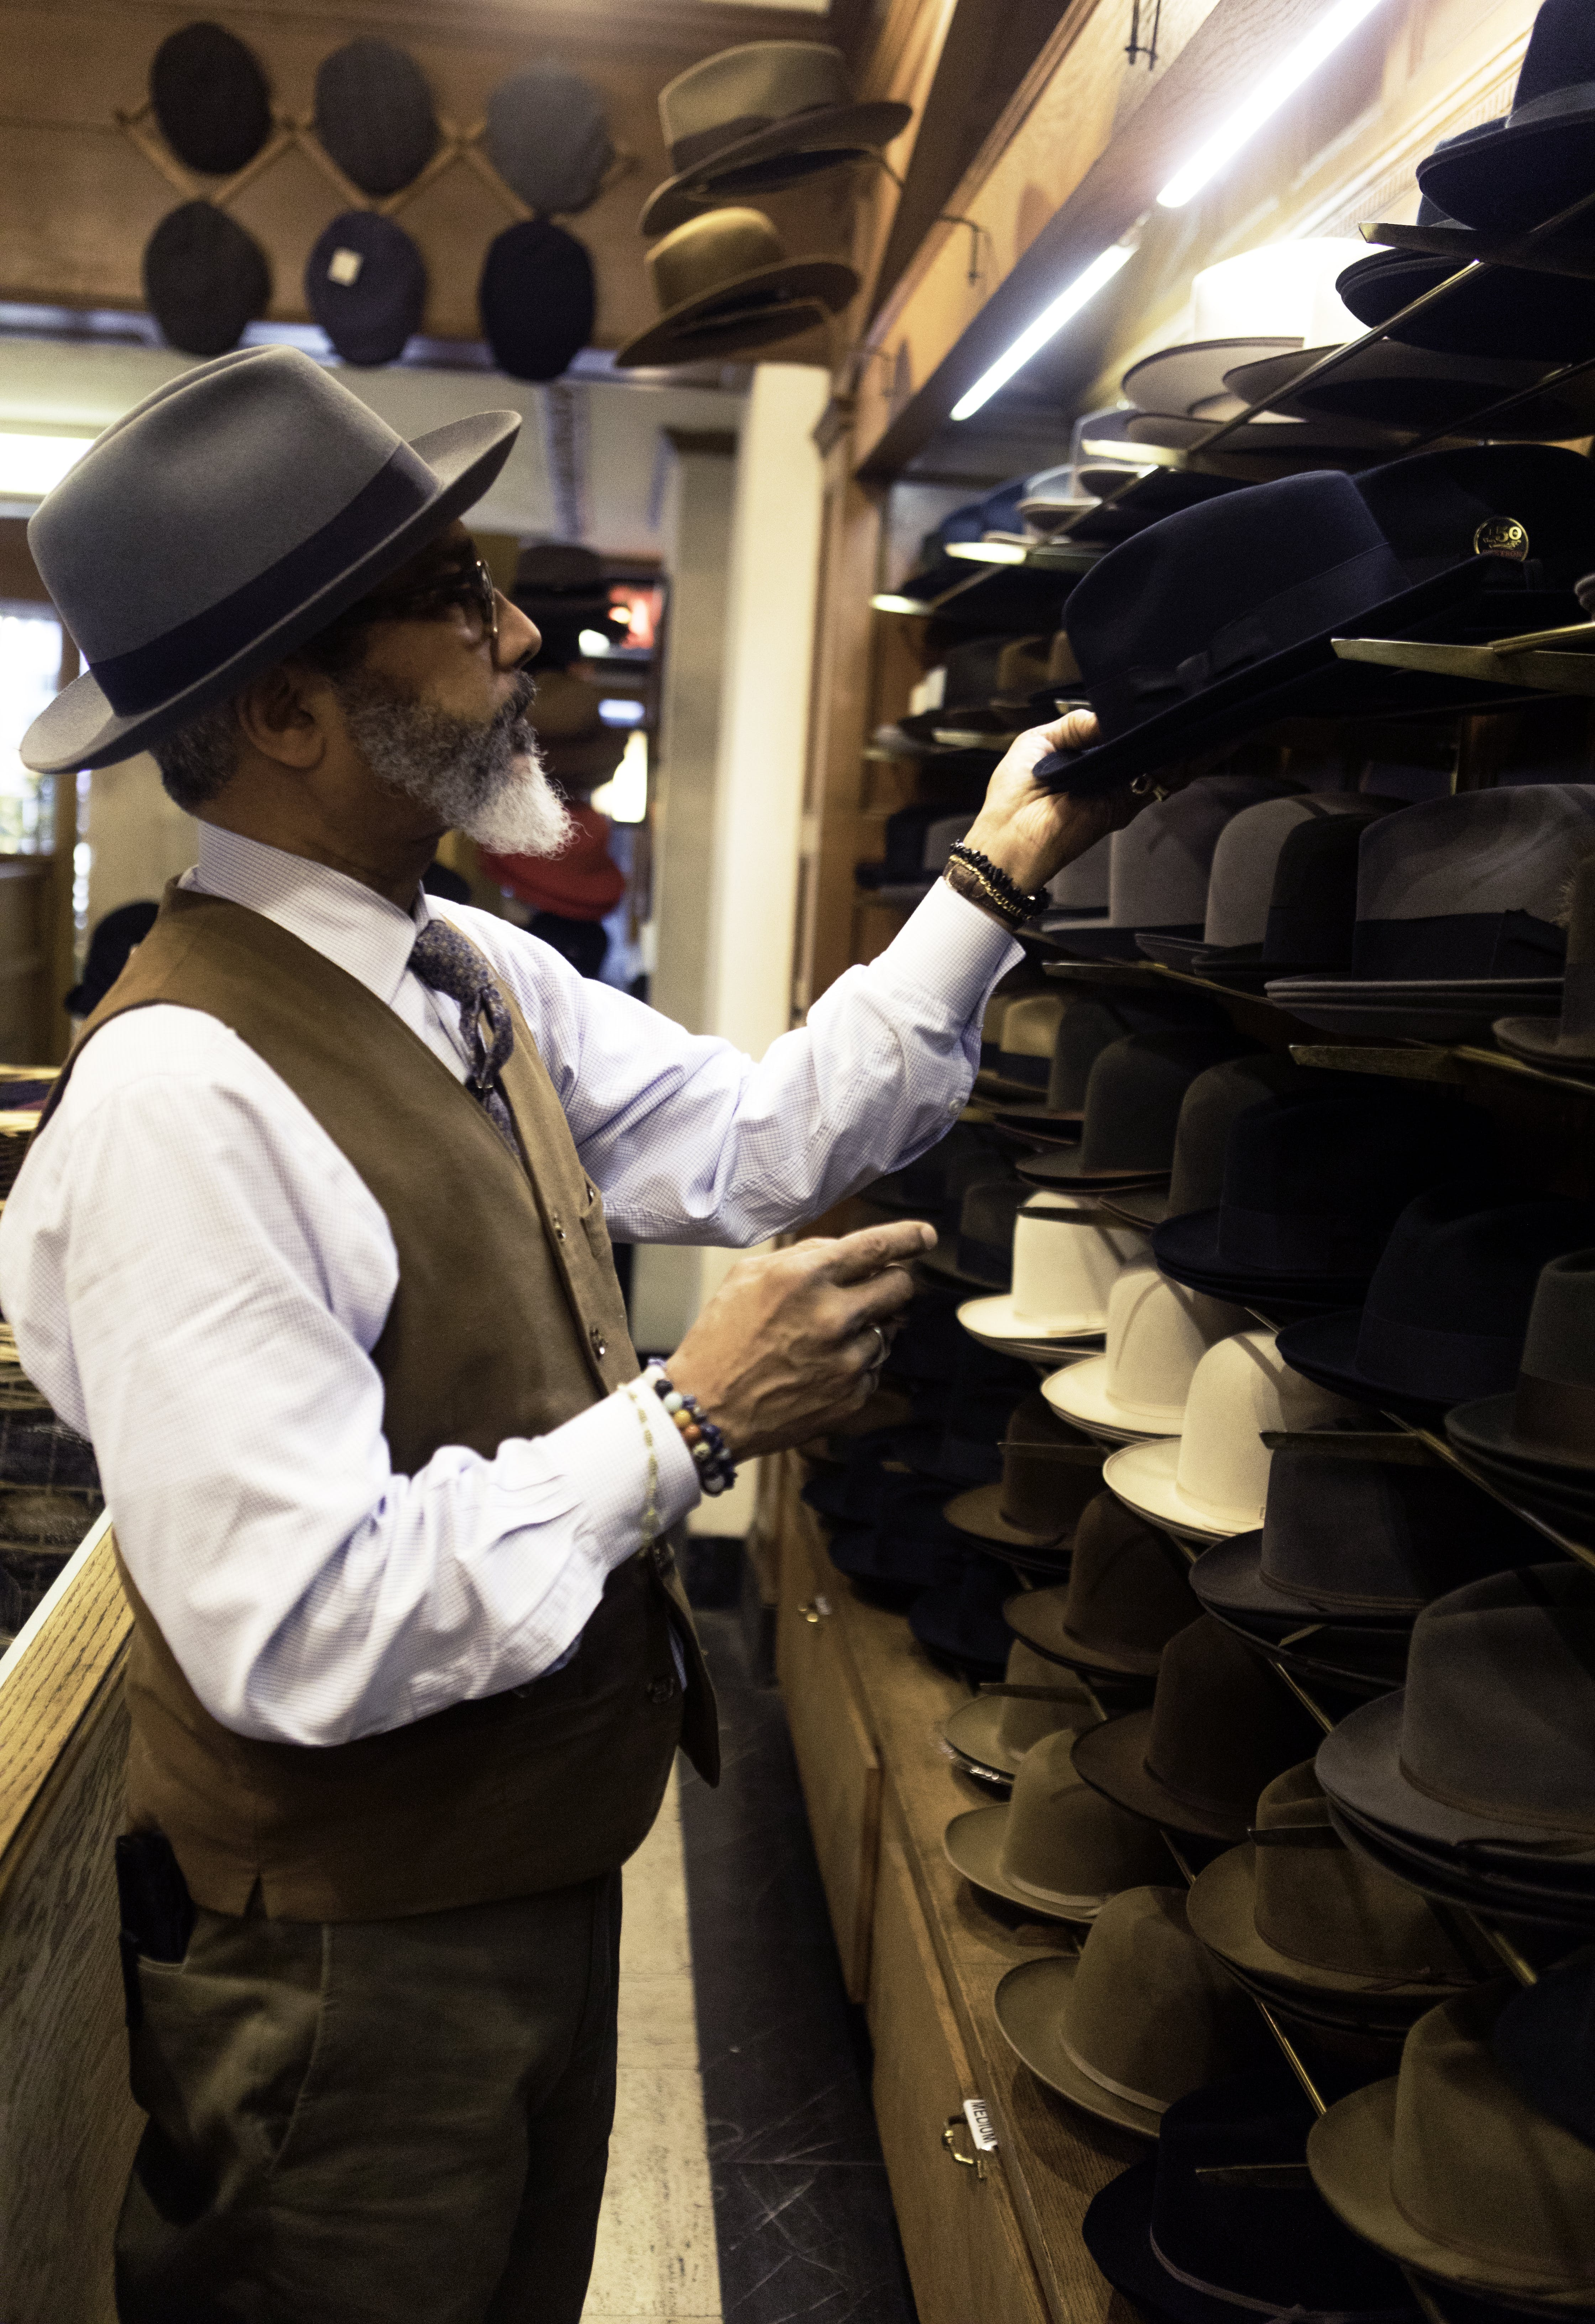 Man Picking Hats in Rack